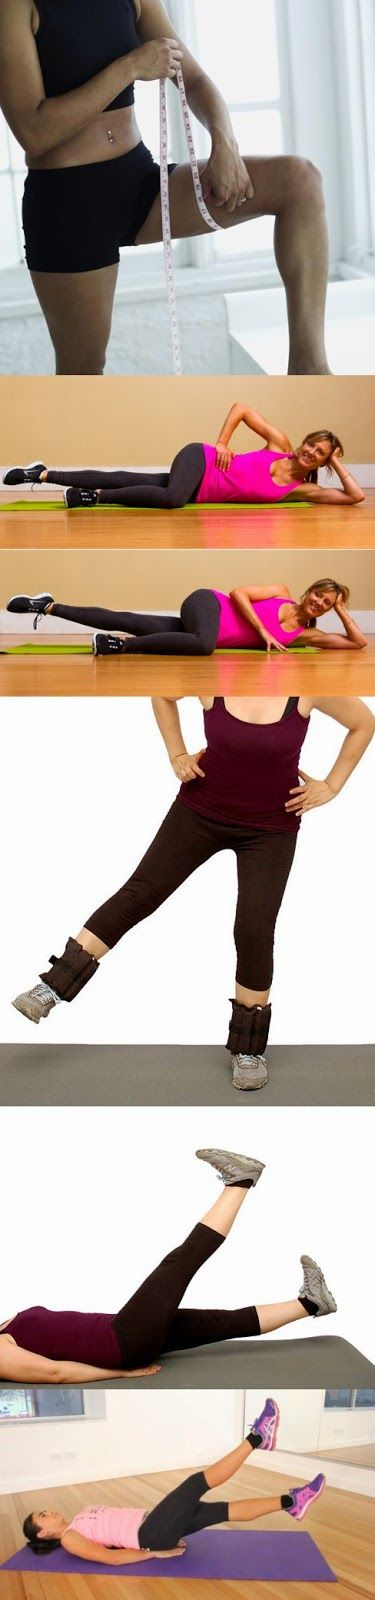 How to Get Rid of Inner Thigh Fat without going to Gym - 3 Simple Exercises | Tips Zone